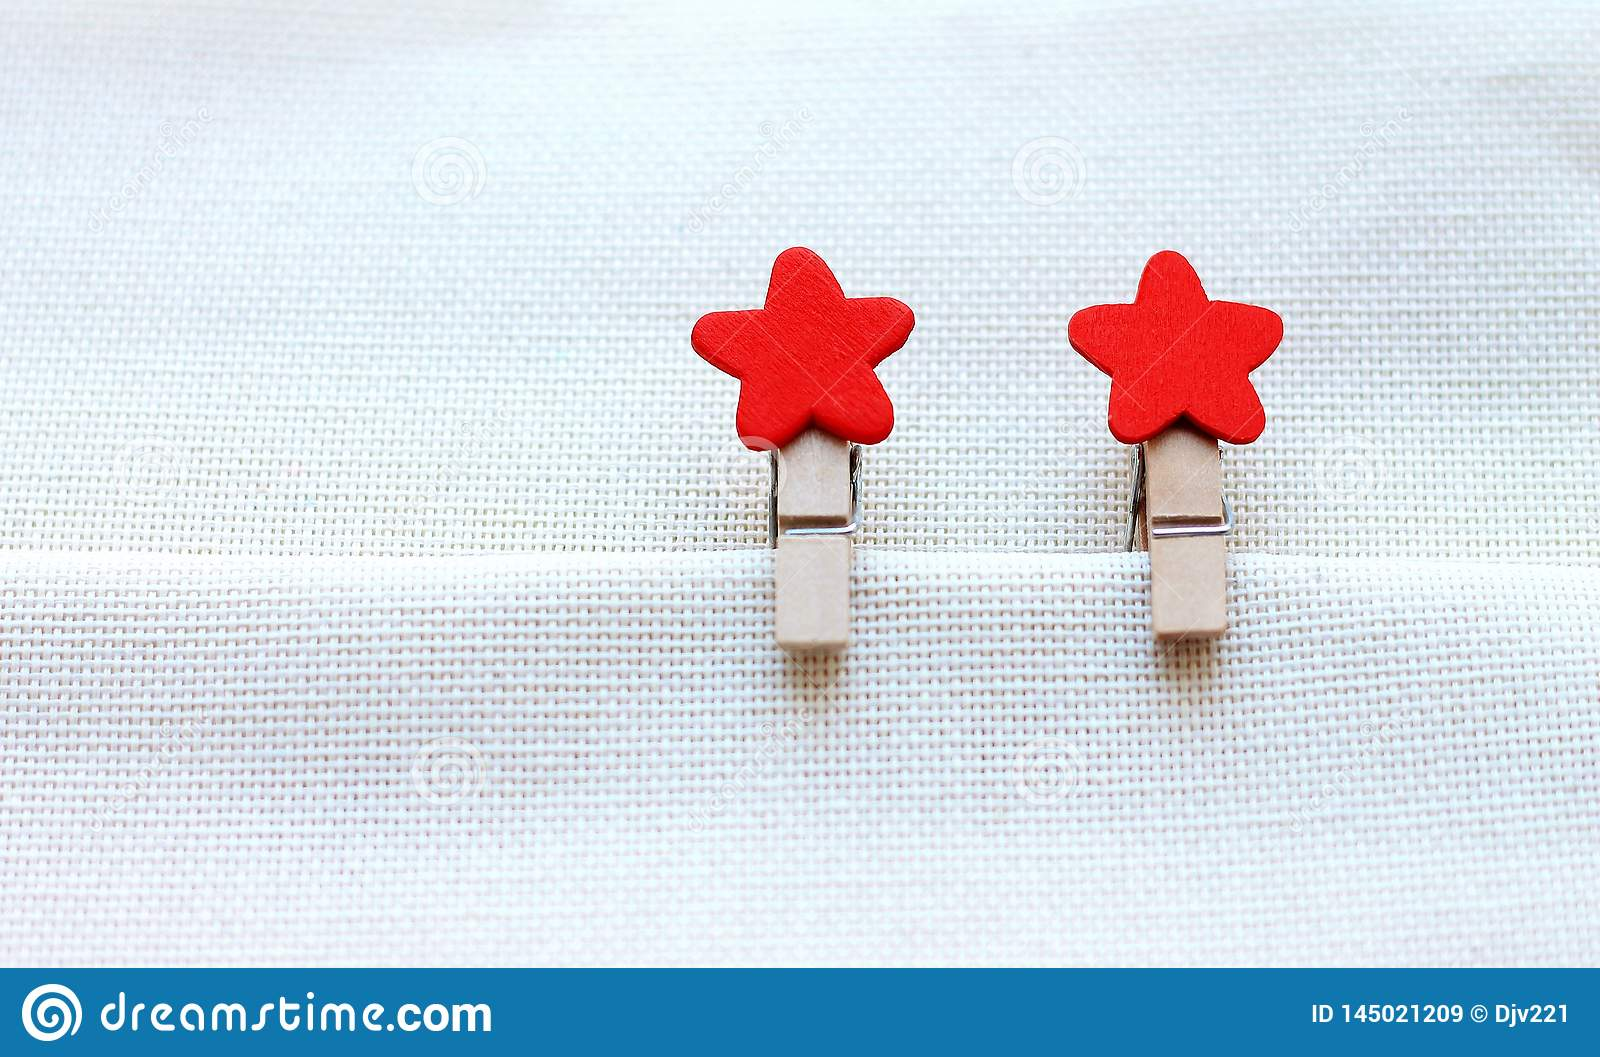 Decorative clothespins with red stars on bright cloth